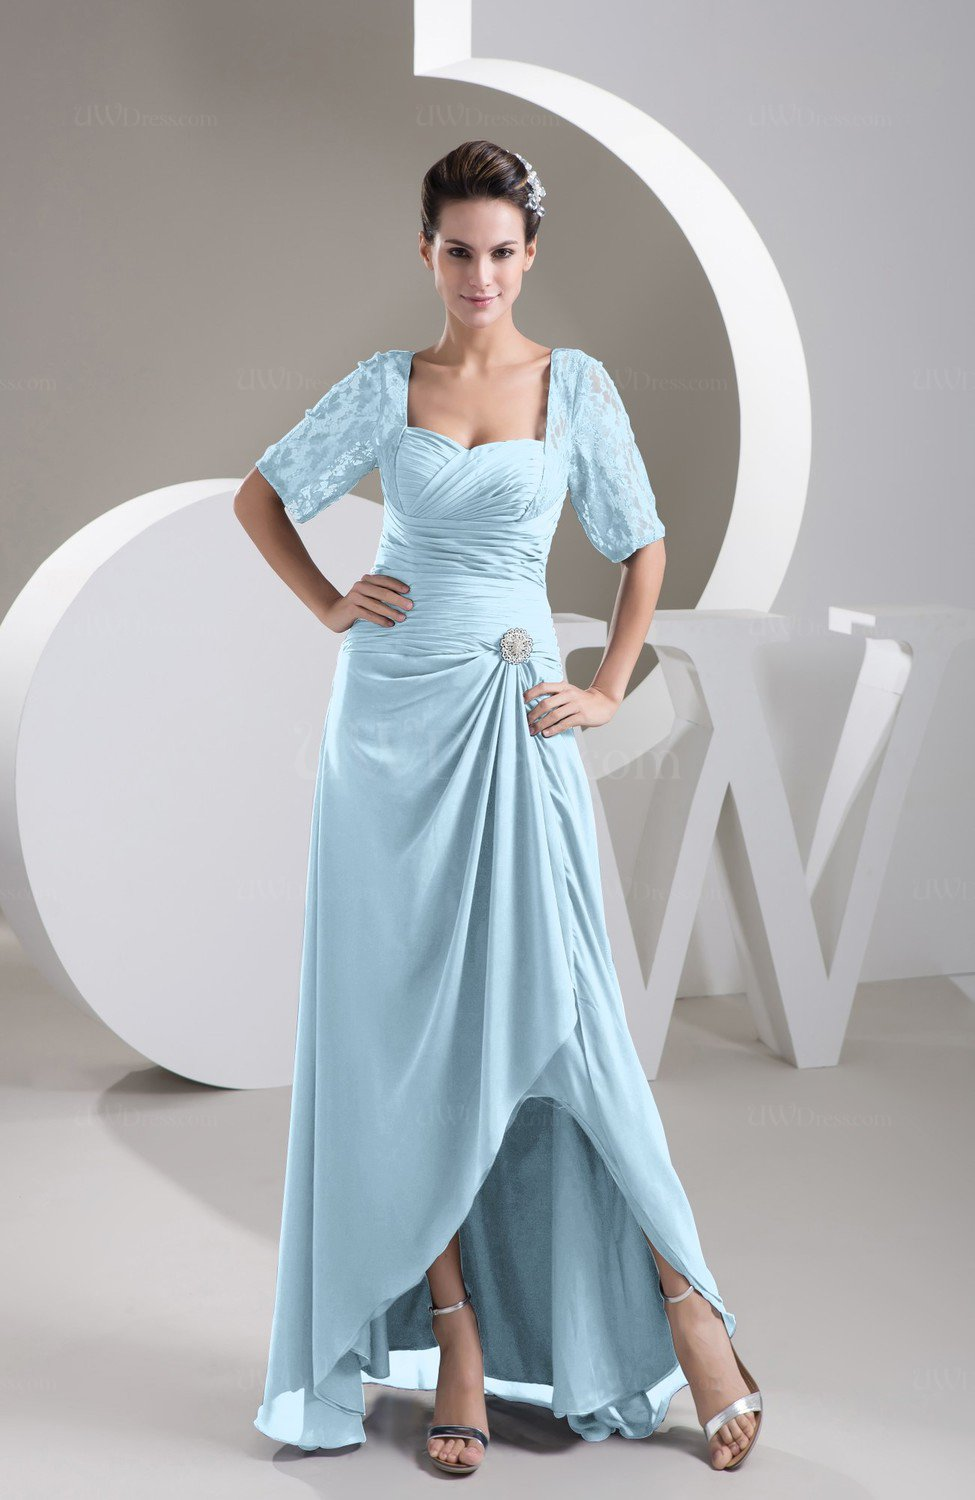 Ice Blue with Sleeves Bridesmaid Dress Chiffon Classy Apple Trendy ...